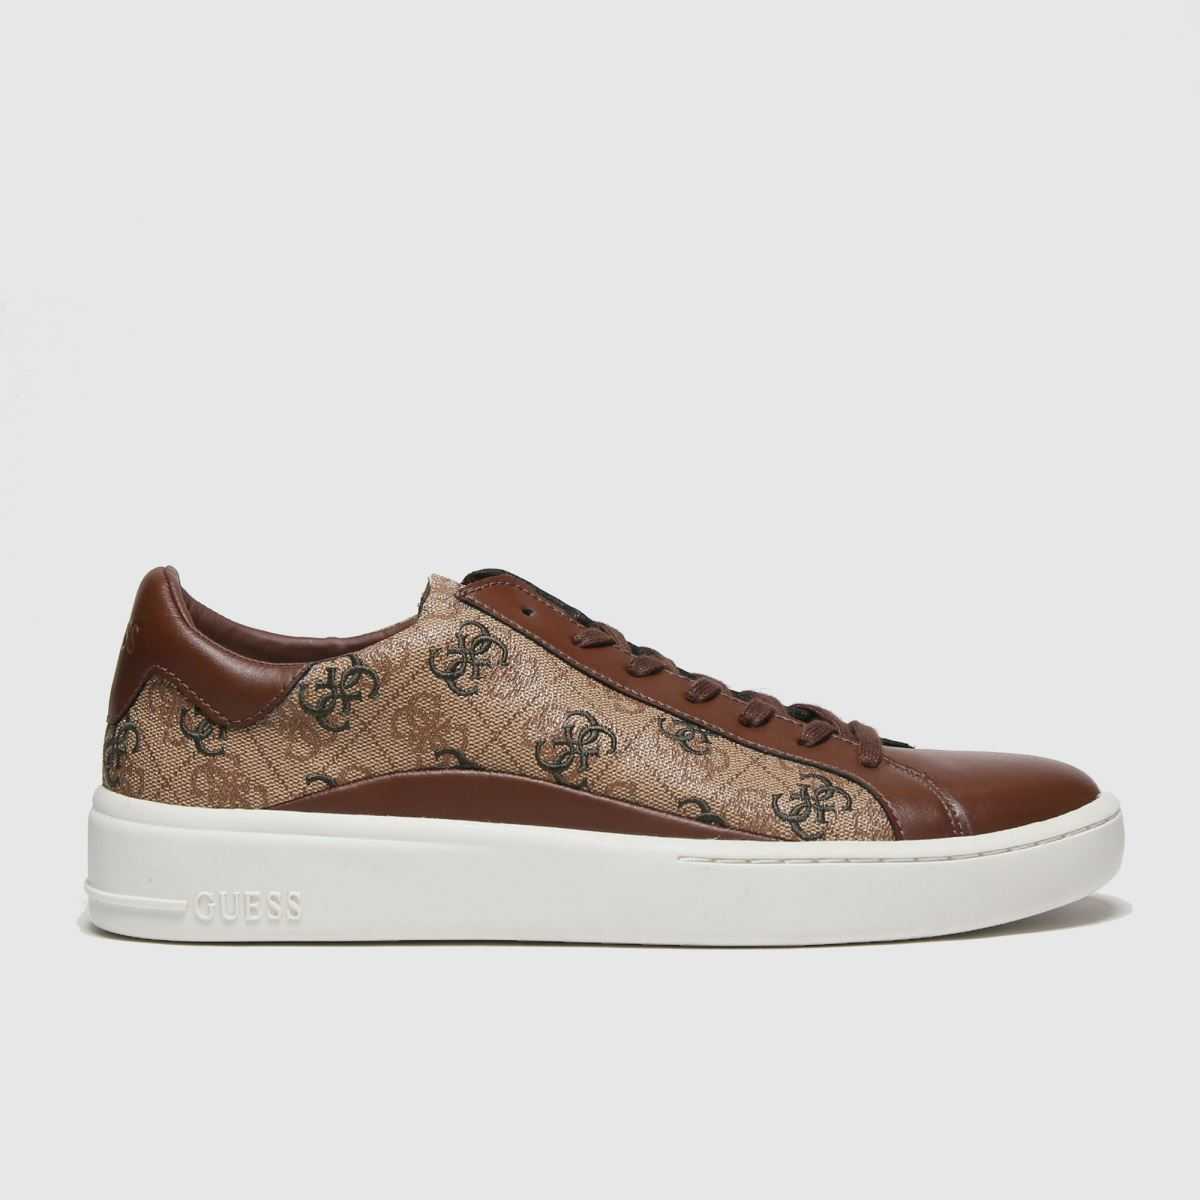 Guess Beige & Brown Verona Trainers